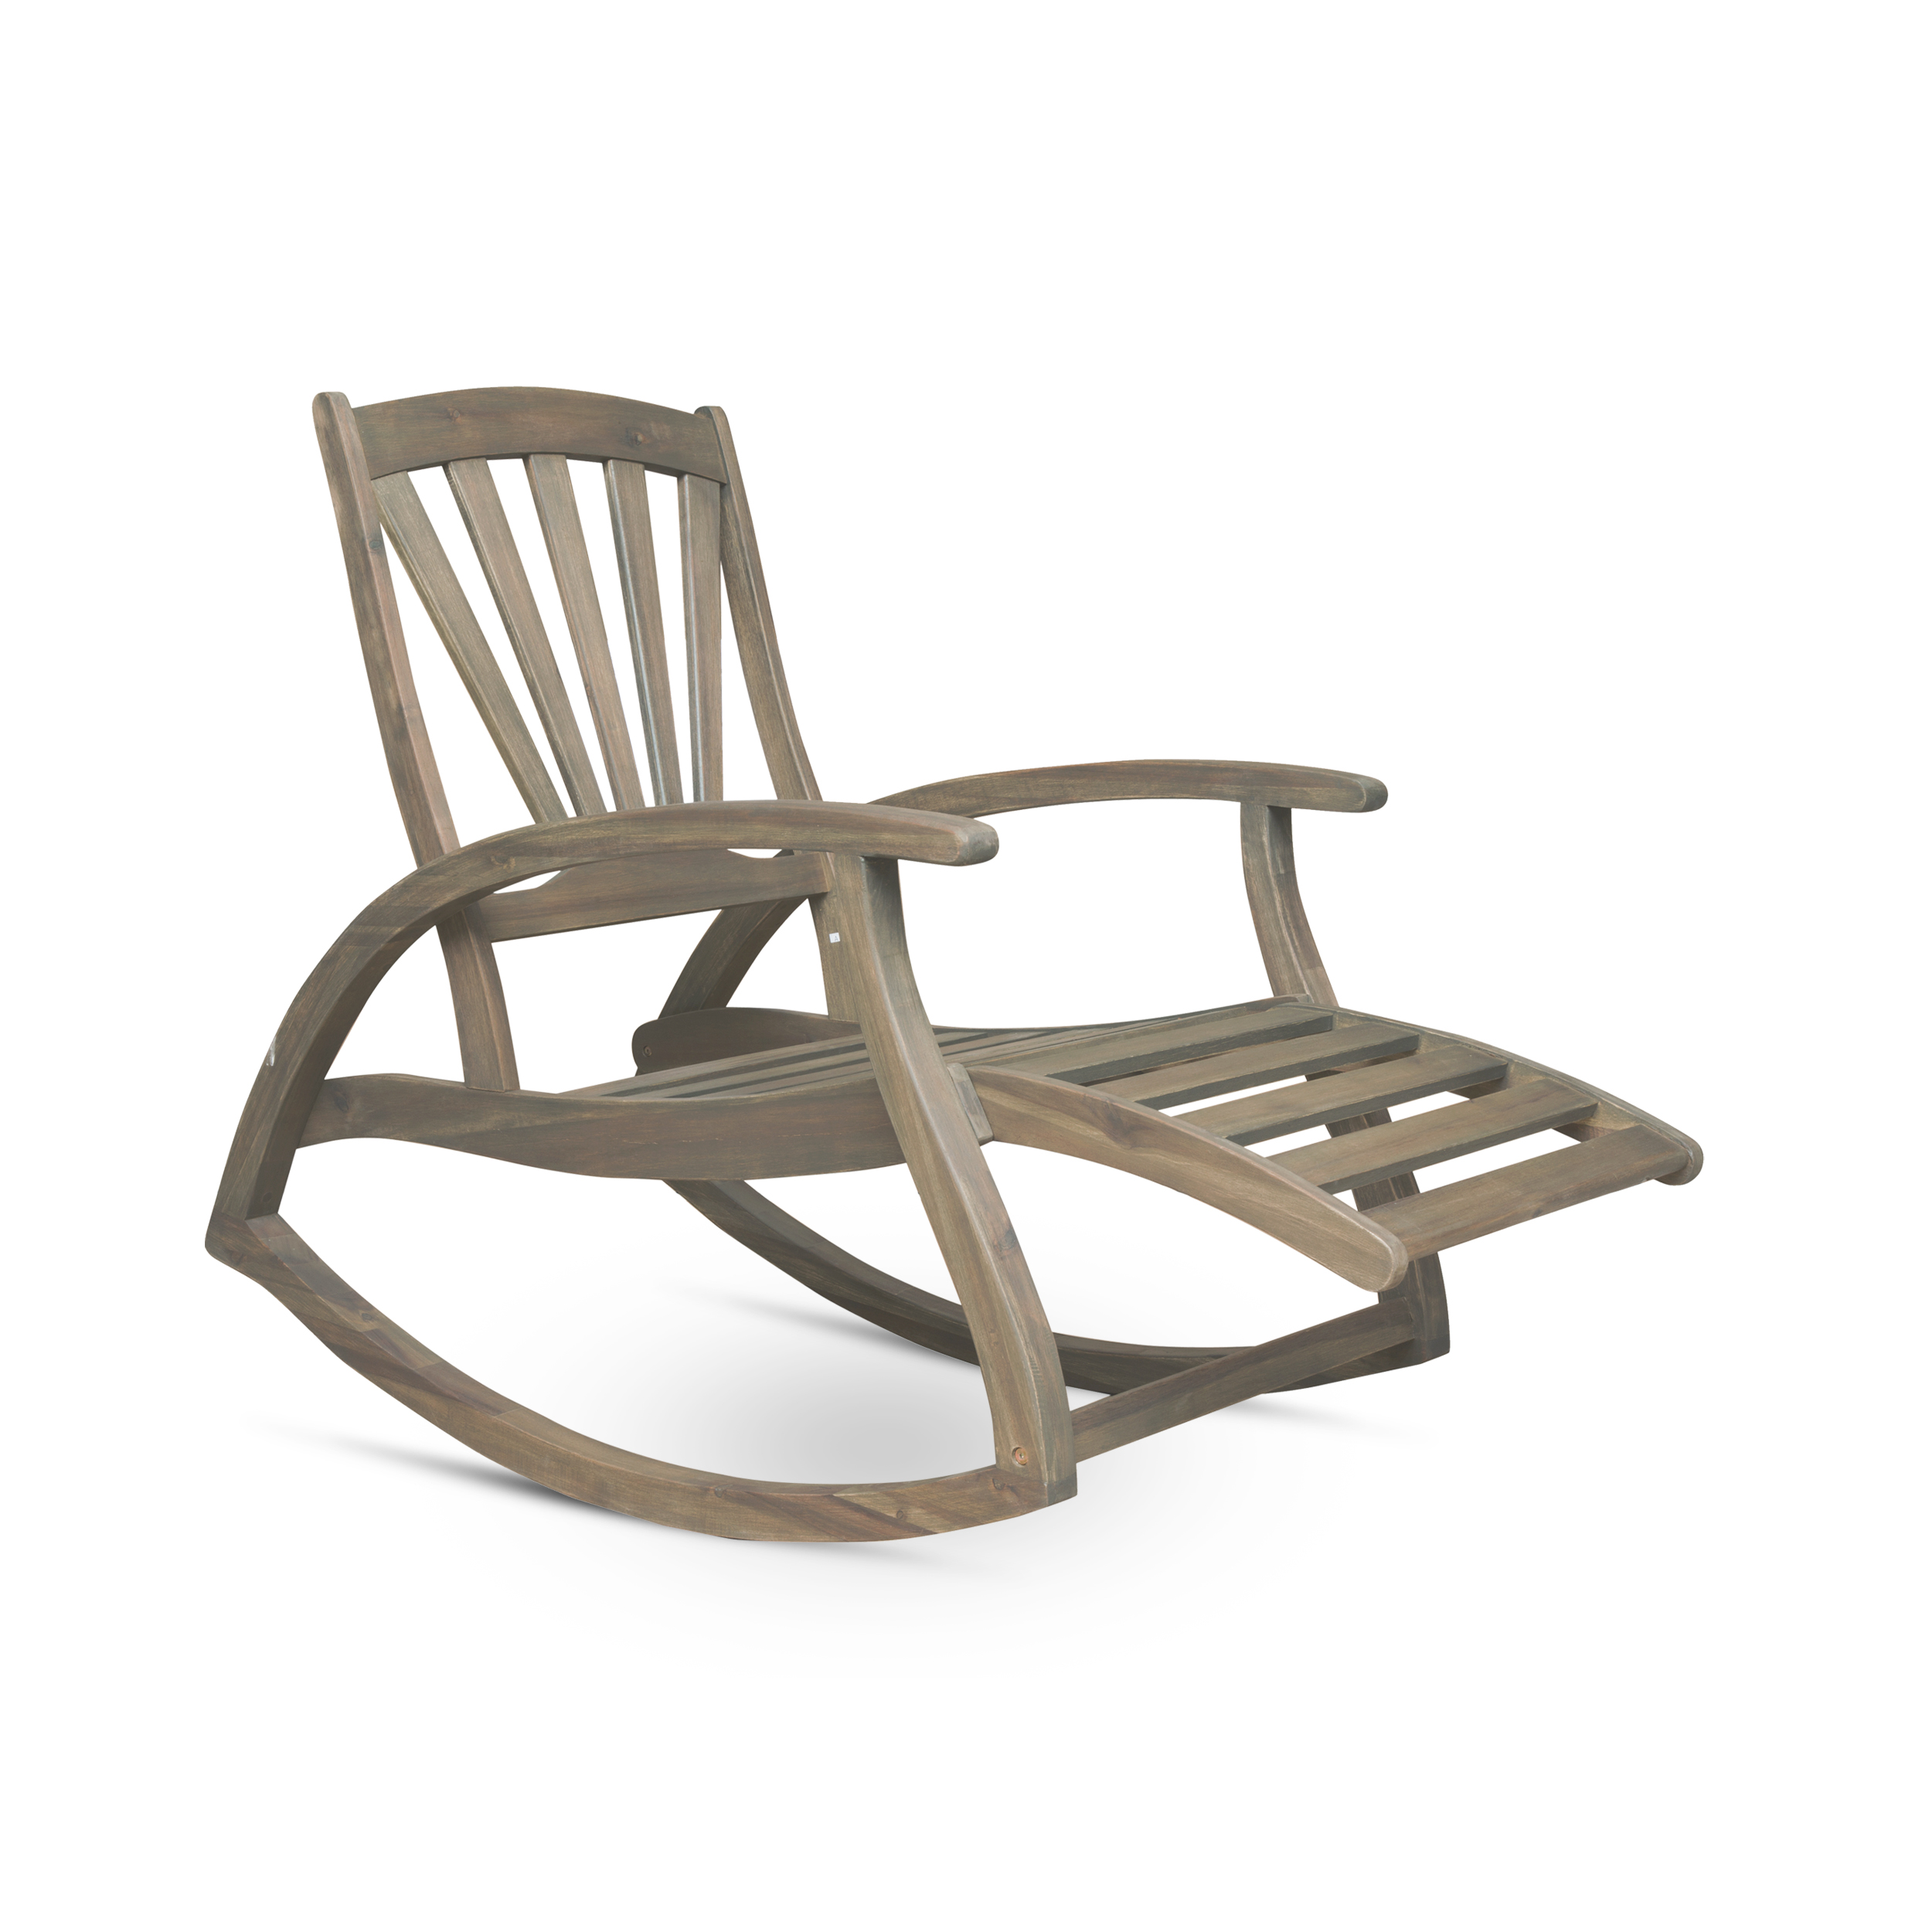 Awesome Details About Alva Outdoor Acacia Wood Rocking Chair With Footrest Lamtechconsult Wood Chair Design Ideas Lamtechconsultcom